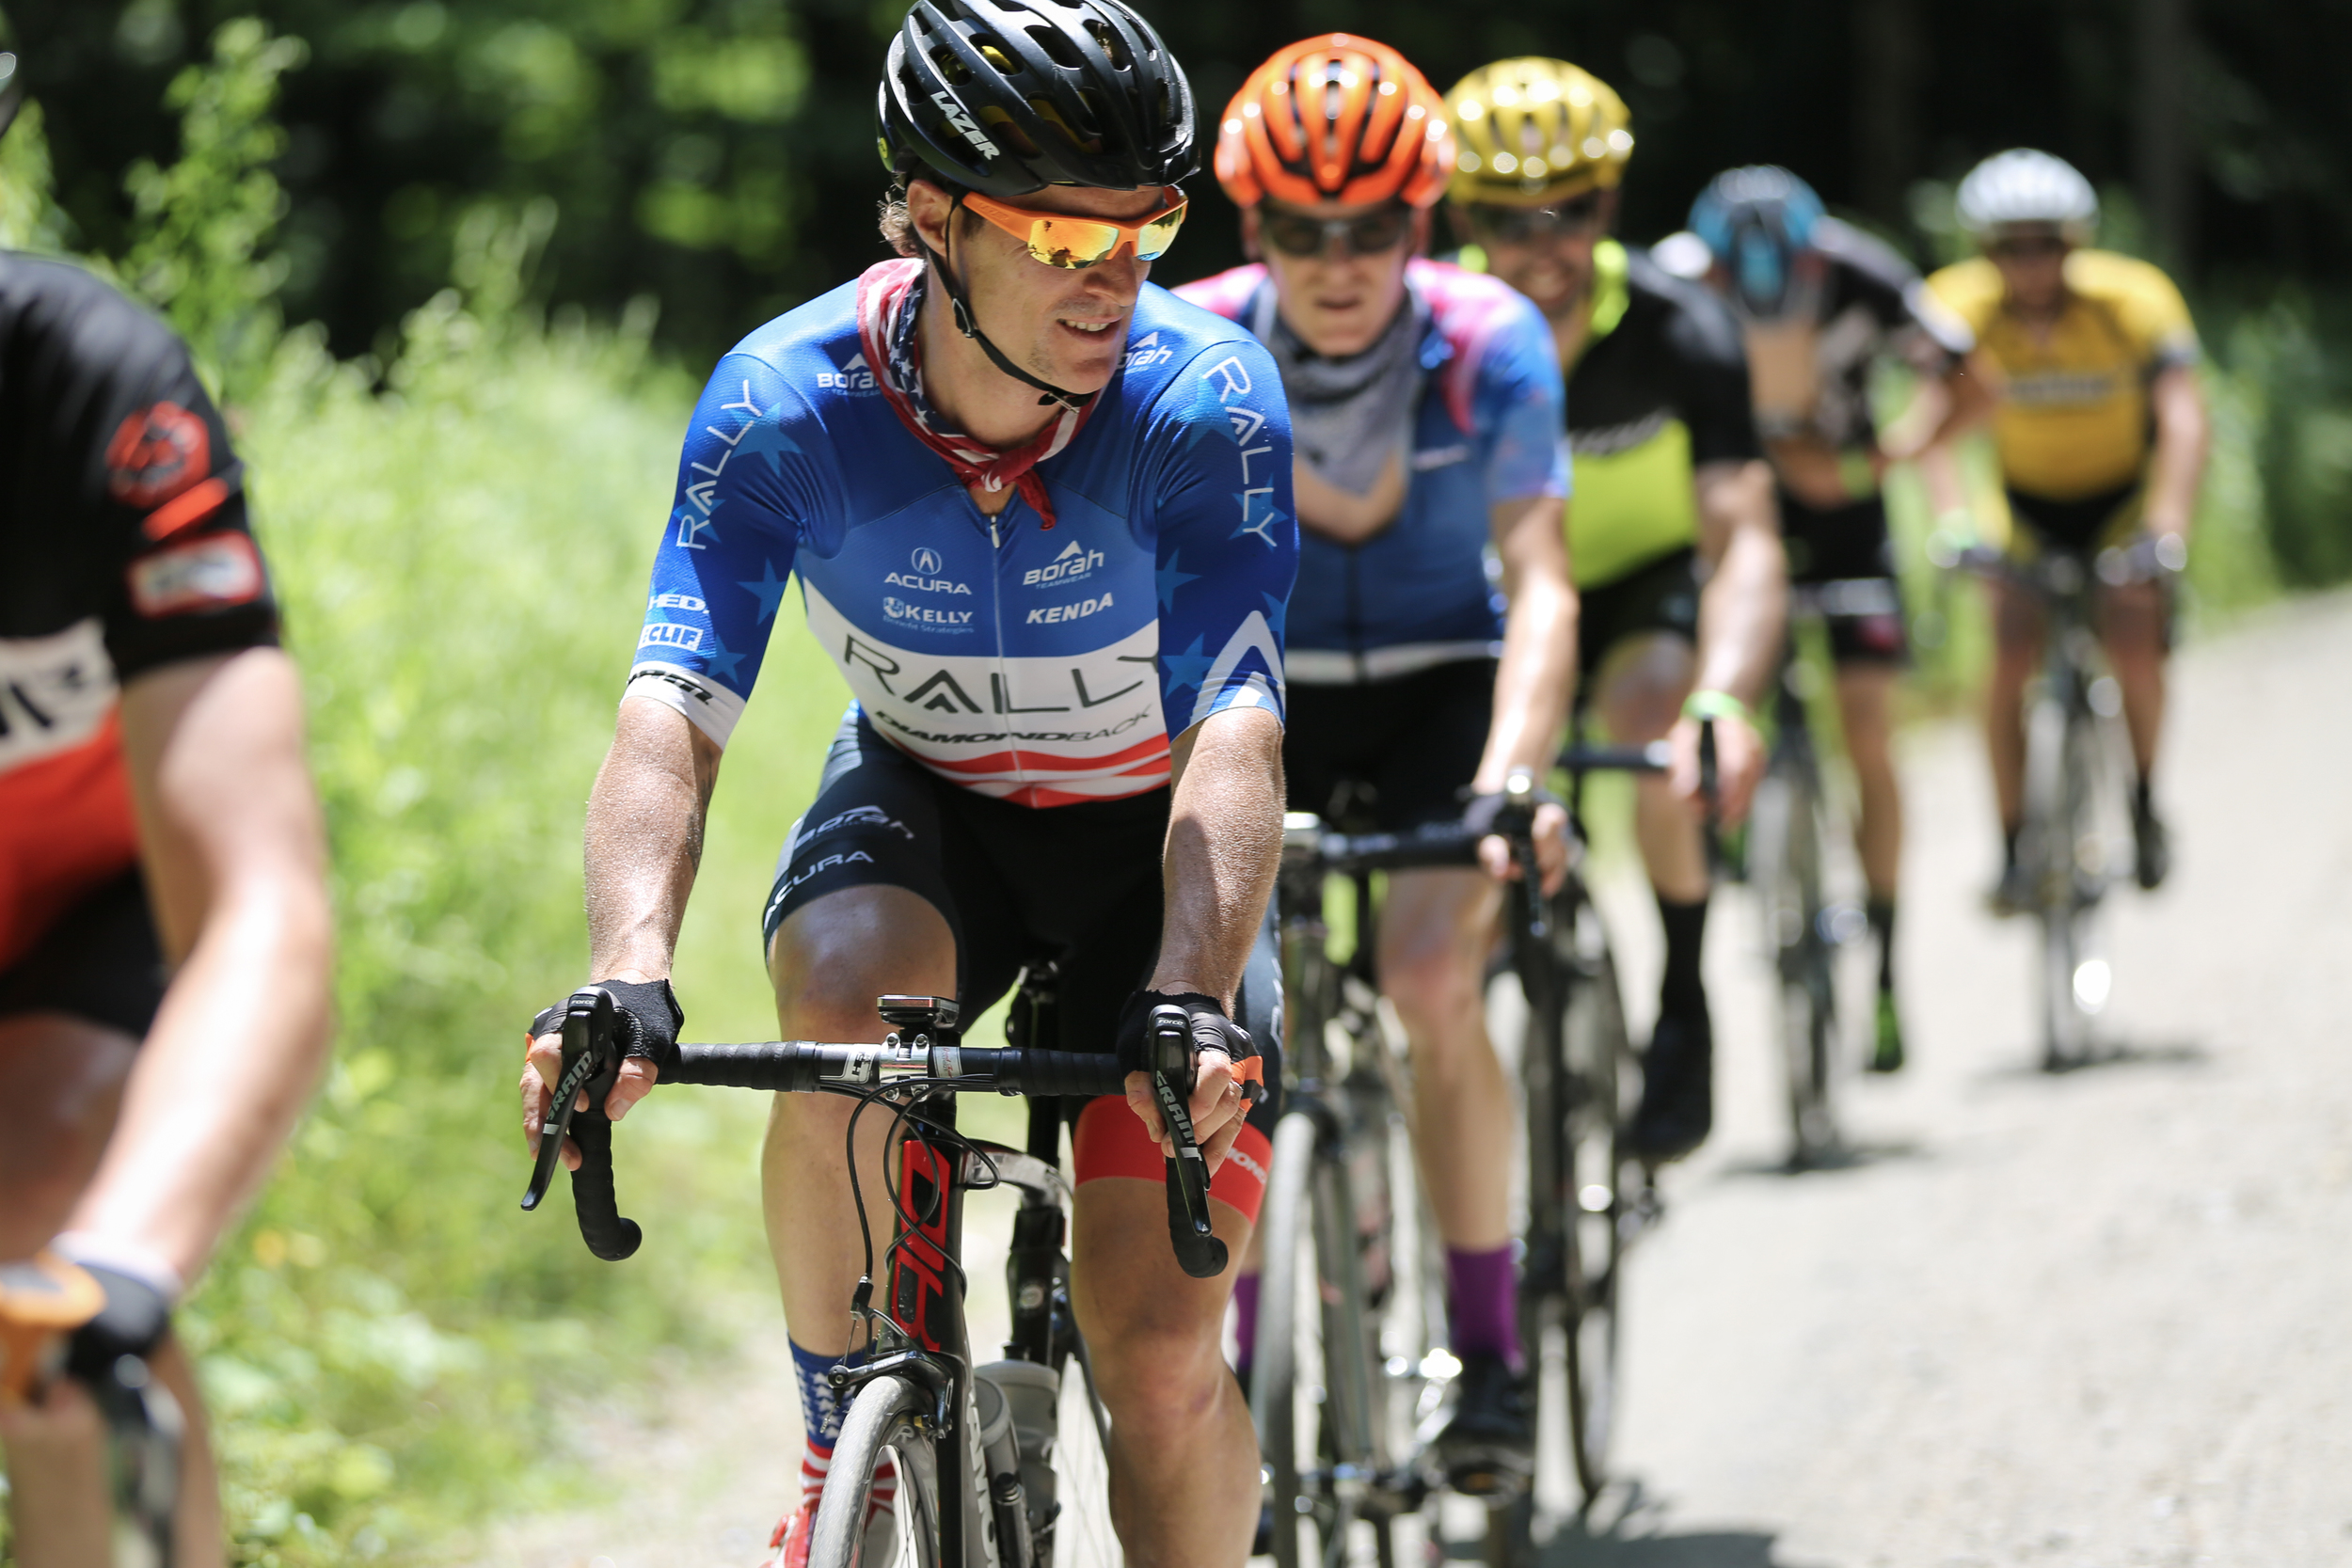 Cyclists ride the Fundo's gravel roads with U.S. National Criterium Champion Brad Huff. Photo by Meg McMahon.